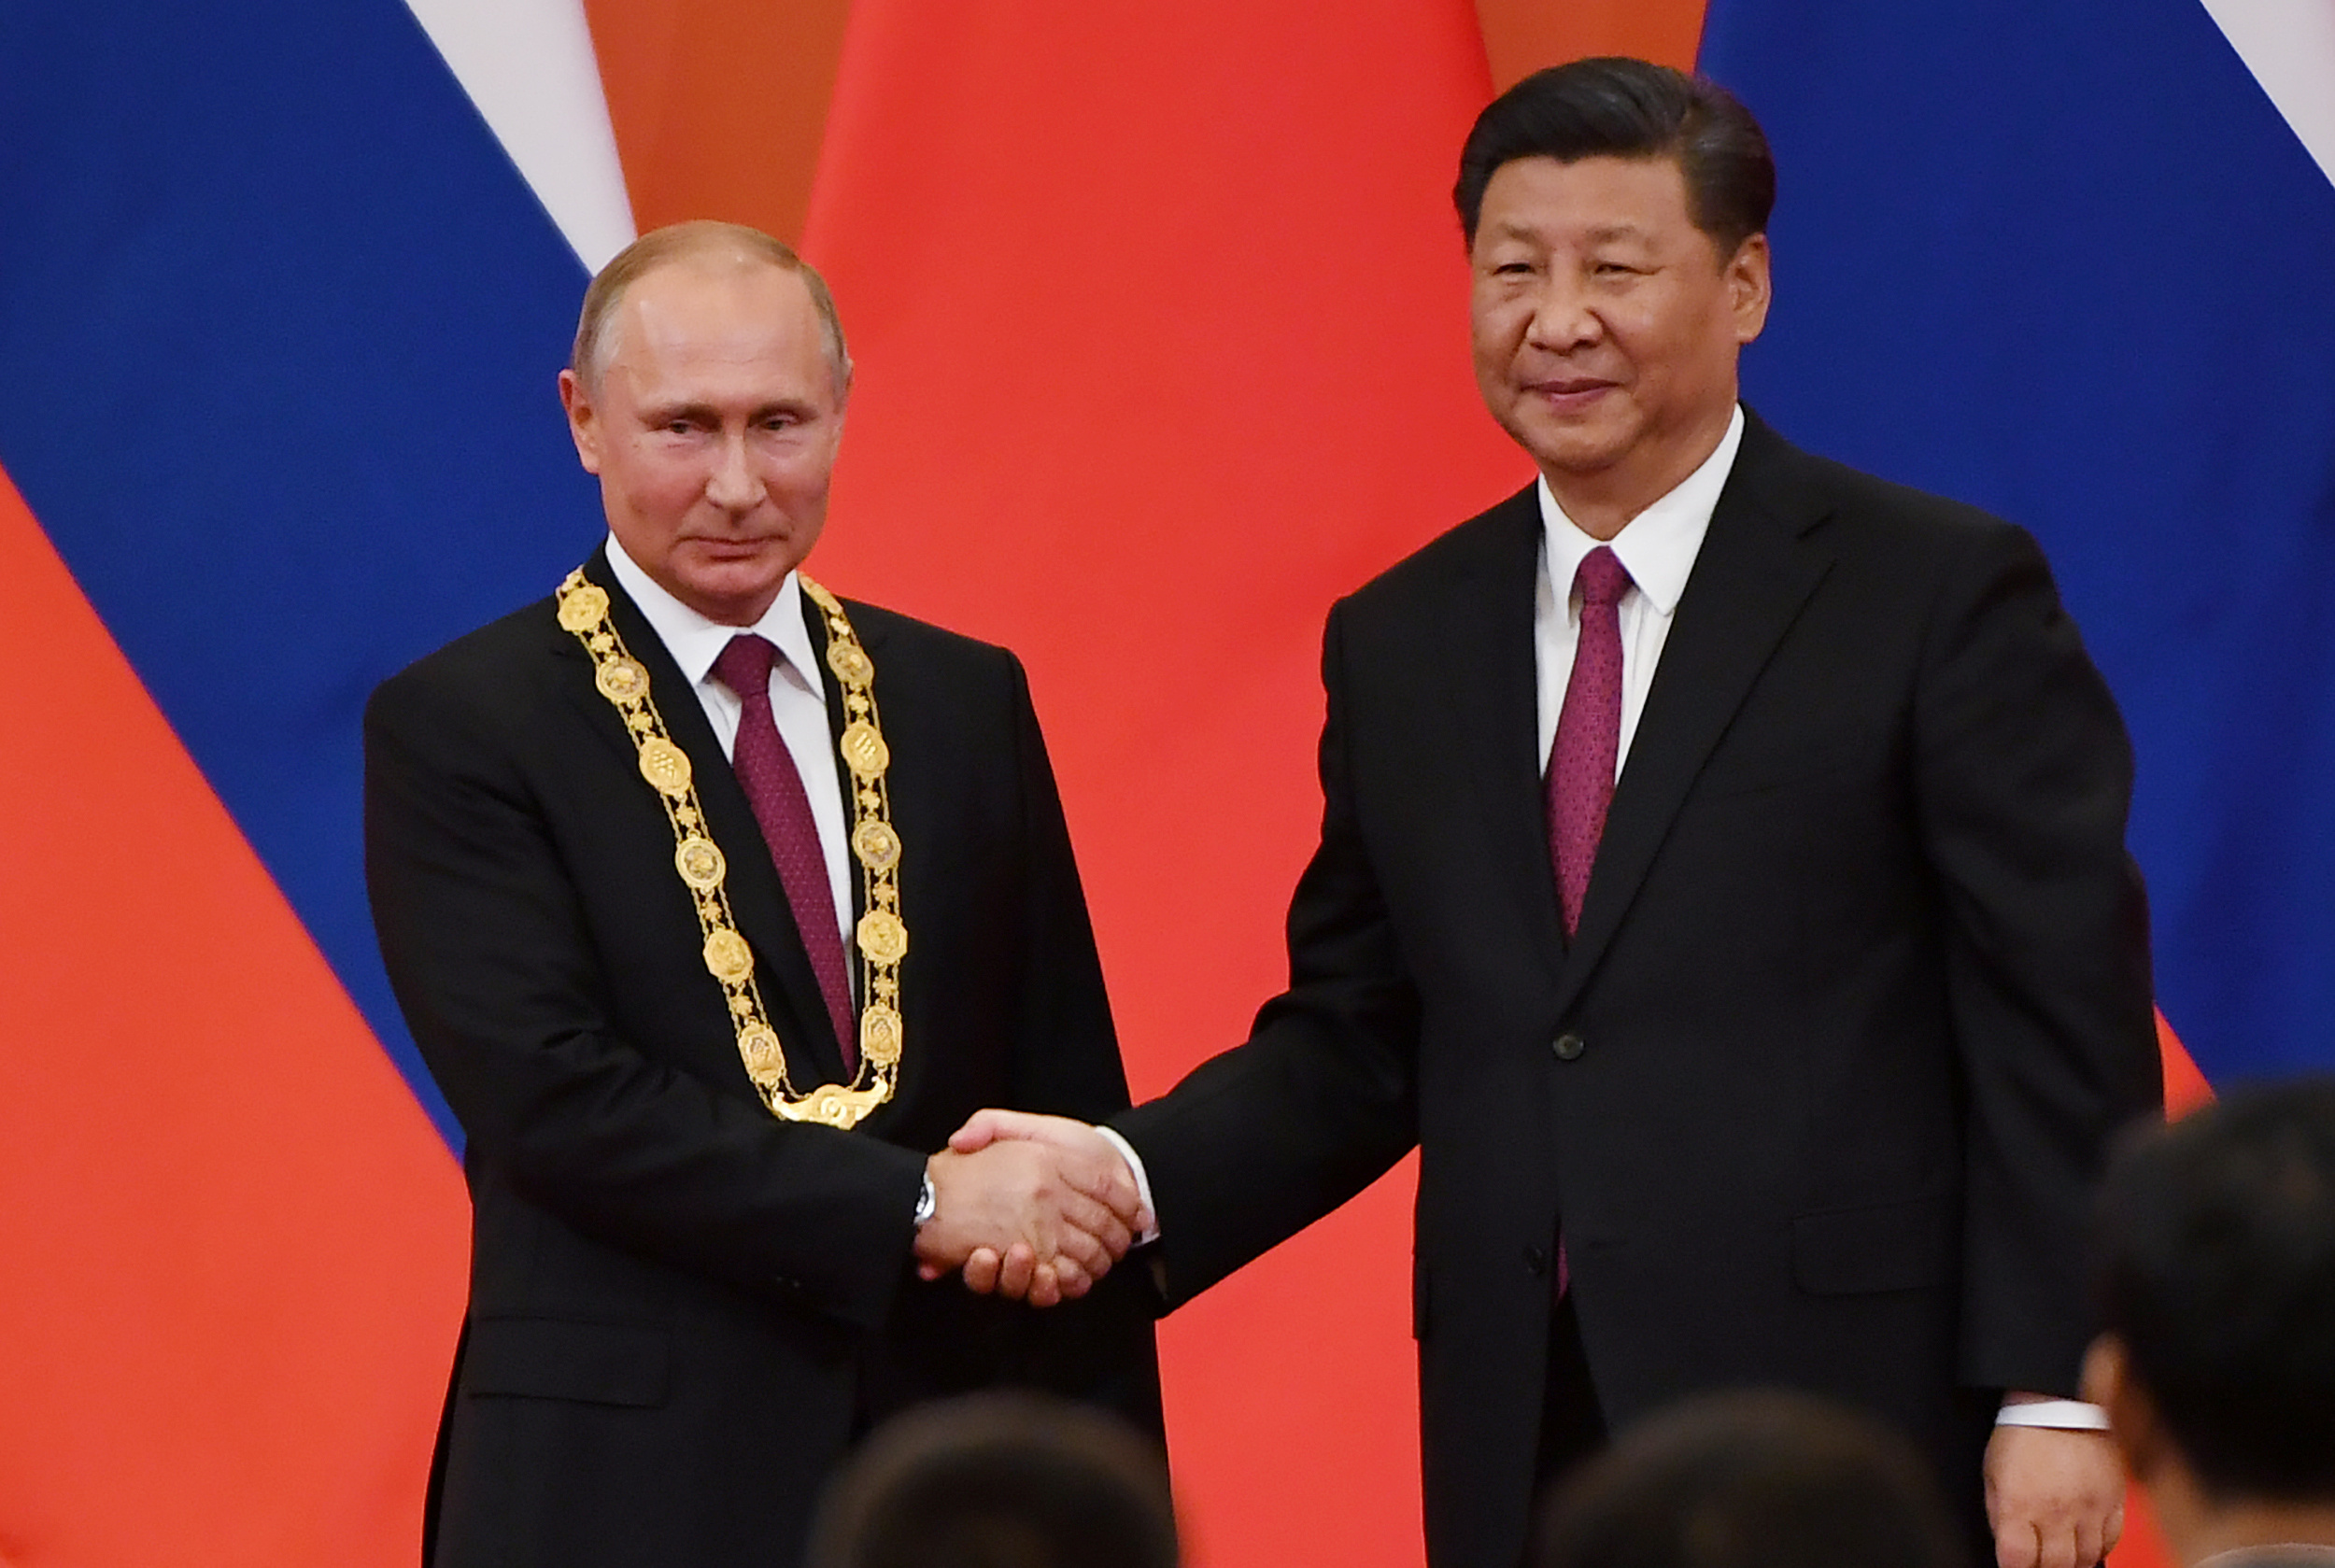 Putin calls for boosting trade ties among SCO members